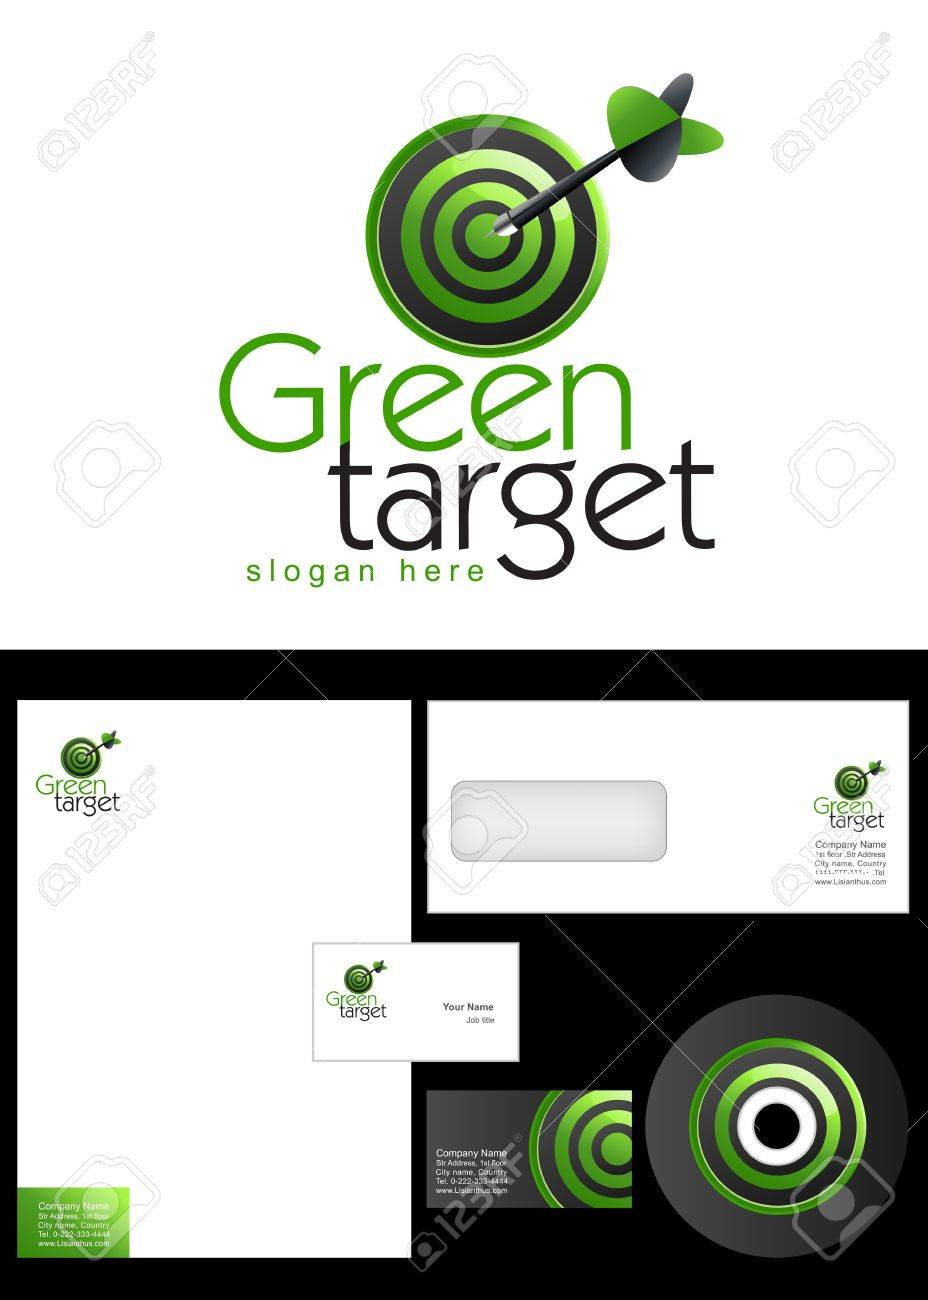 Green Target Logo Design And Corporate Identity Package Including ...